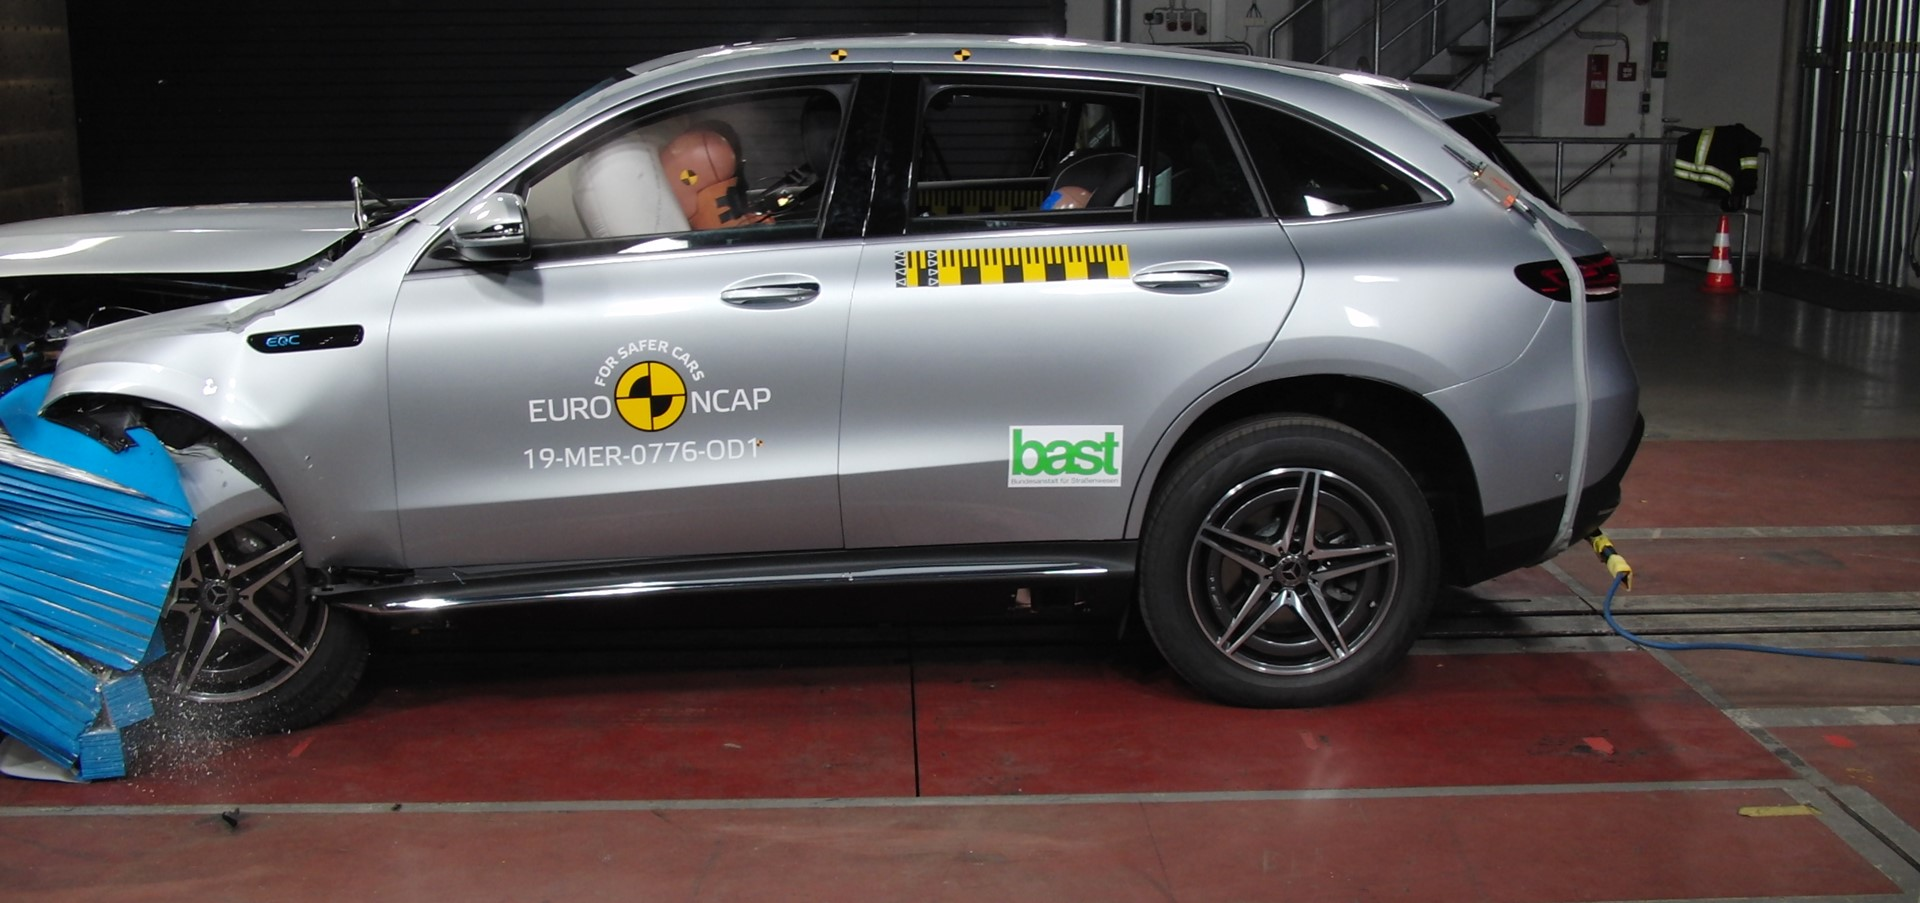 Seven Earn Safety Accolades in Latest Round of Euro NCAP